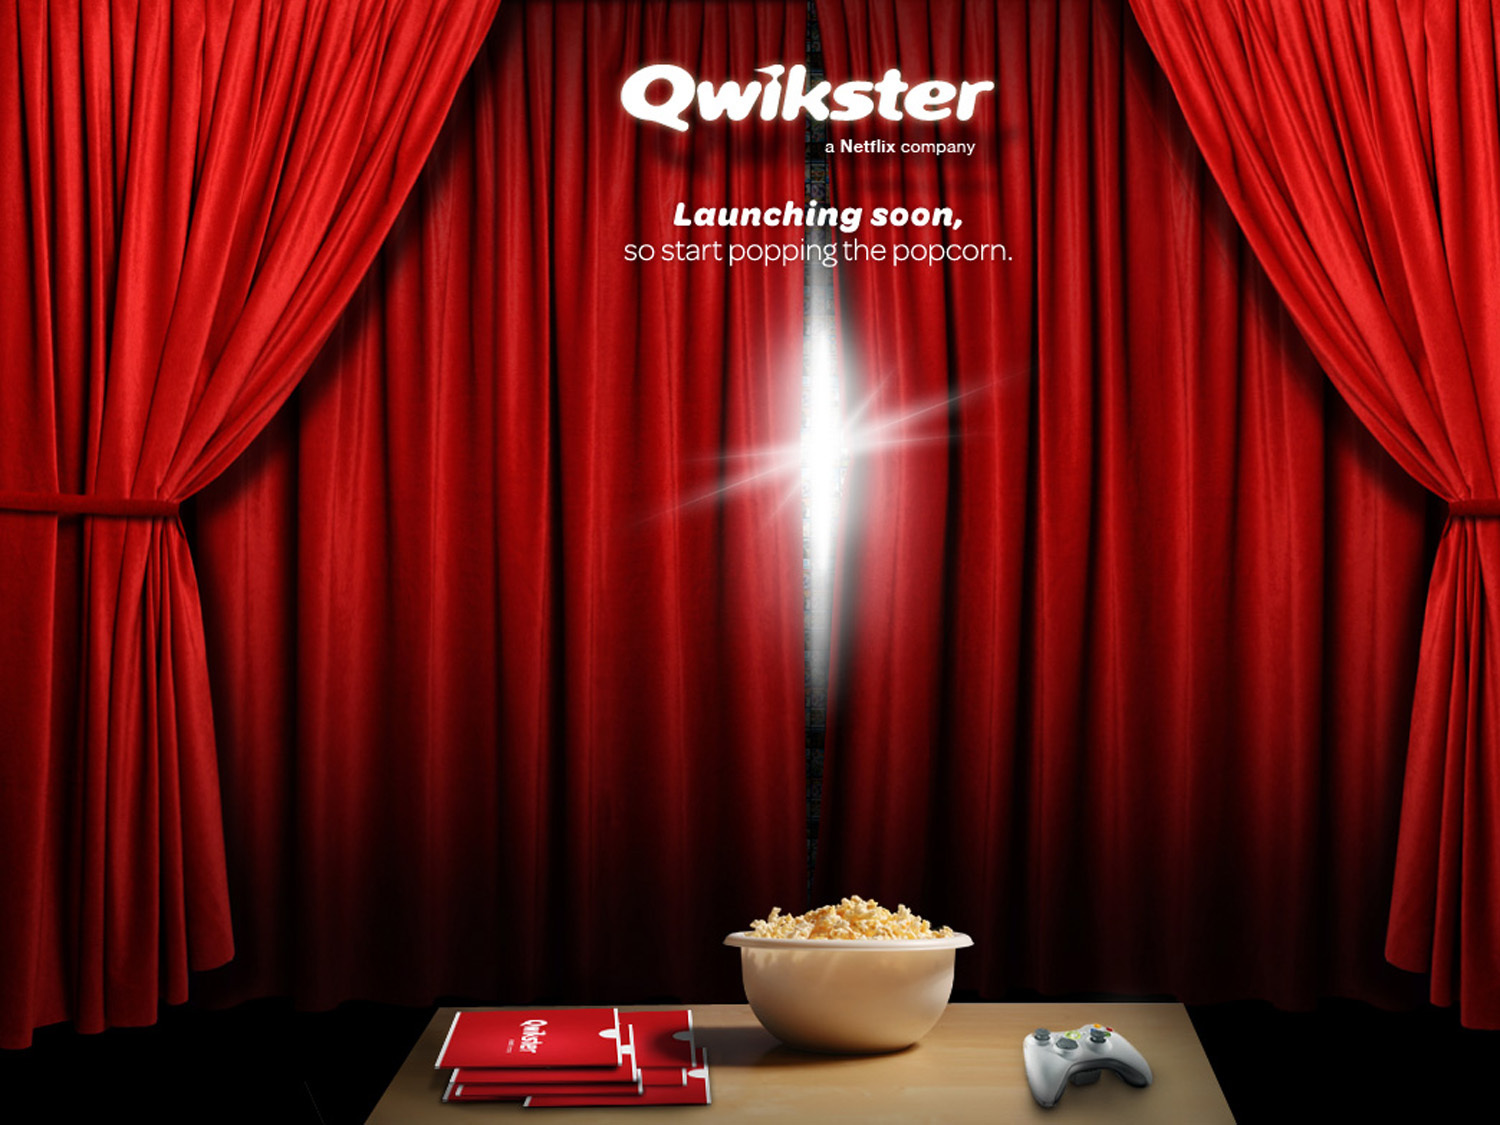 Qwikster image